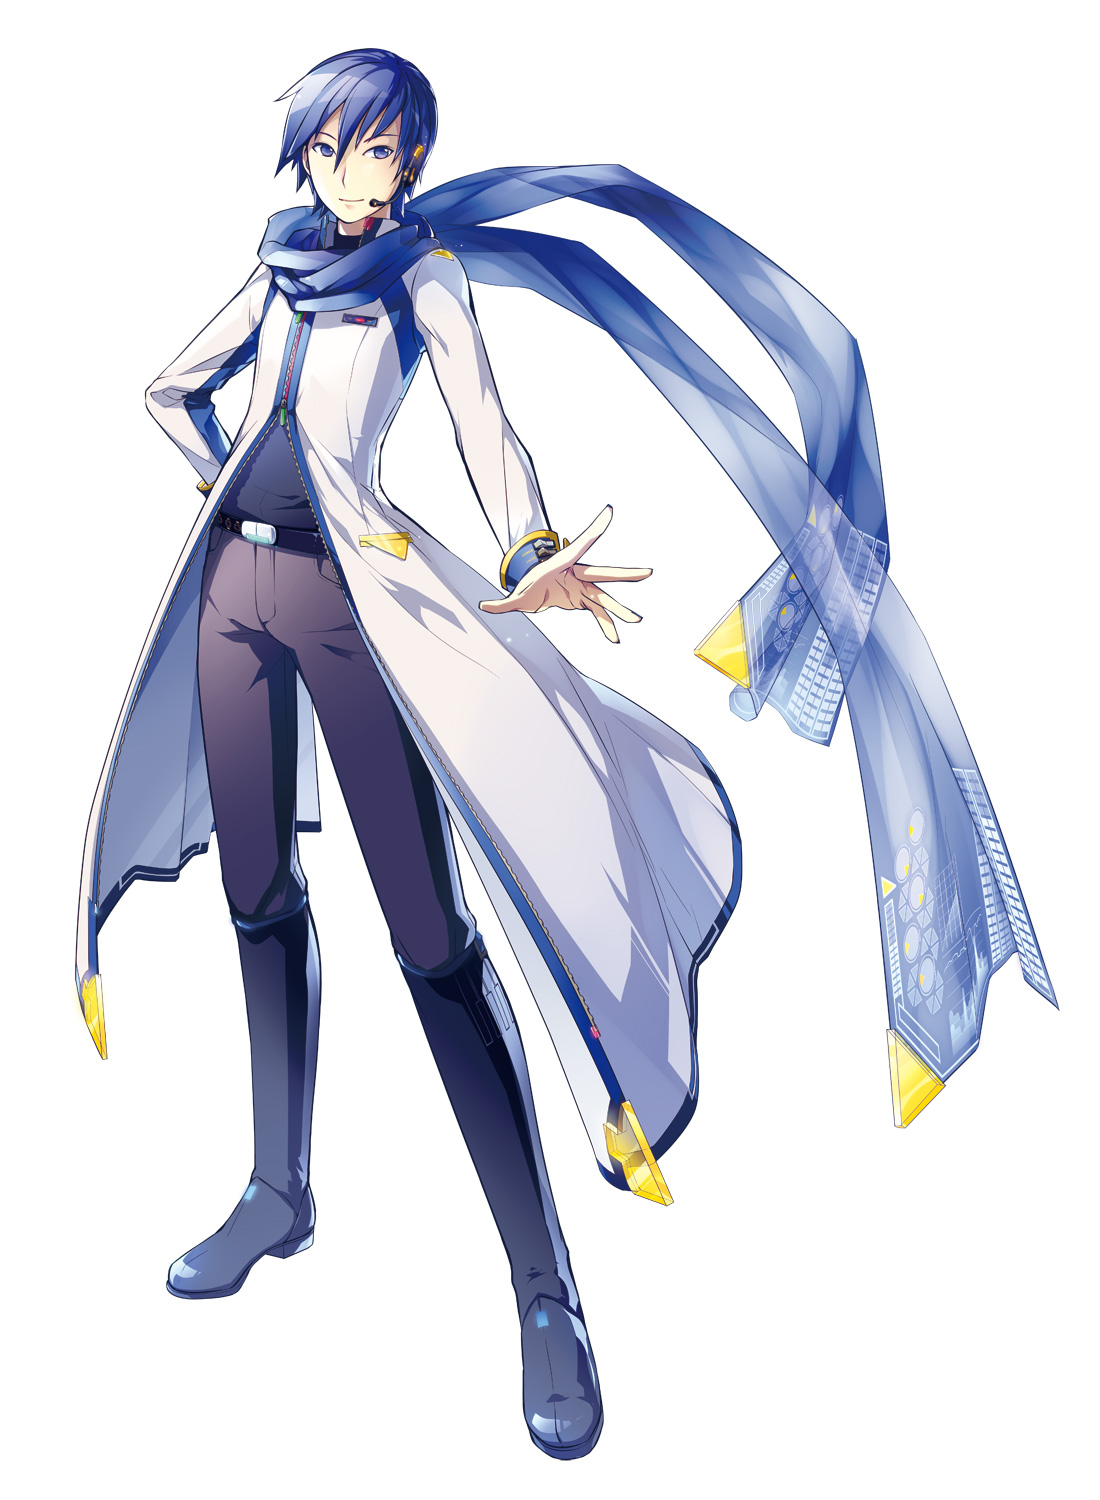 Kaito Vocaloid Ice Cream Images & Pictures - Becuo